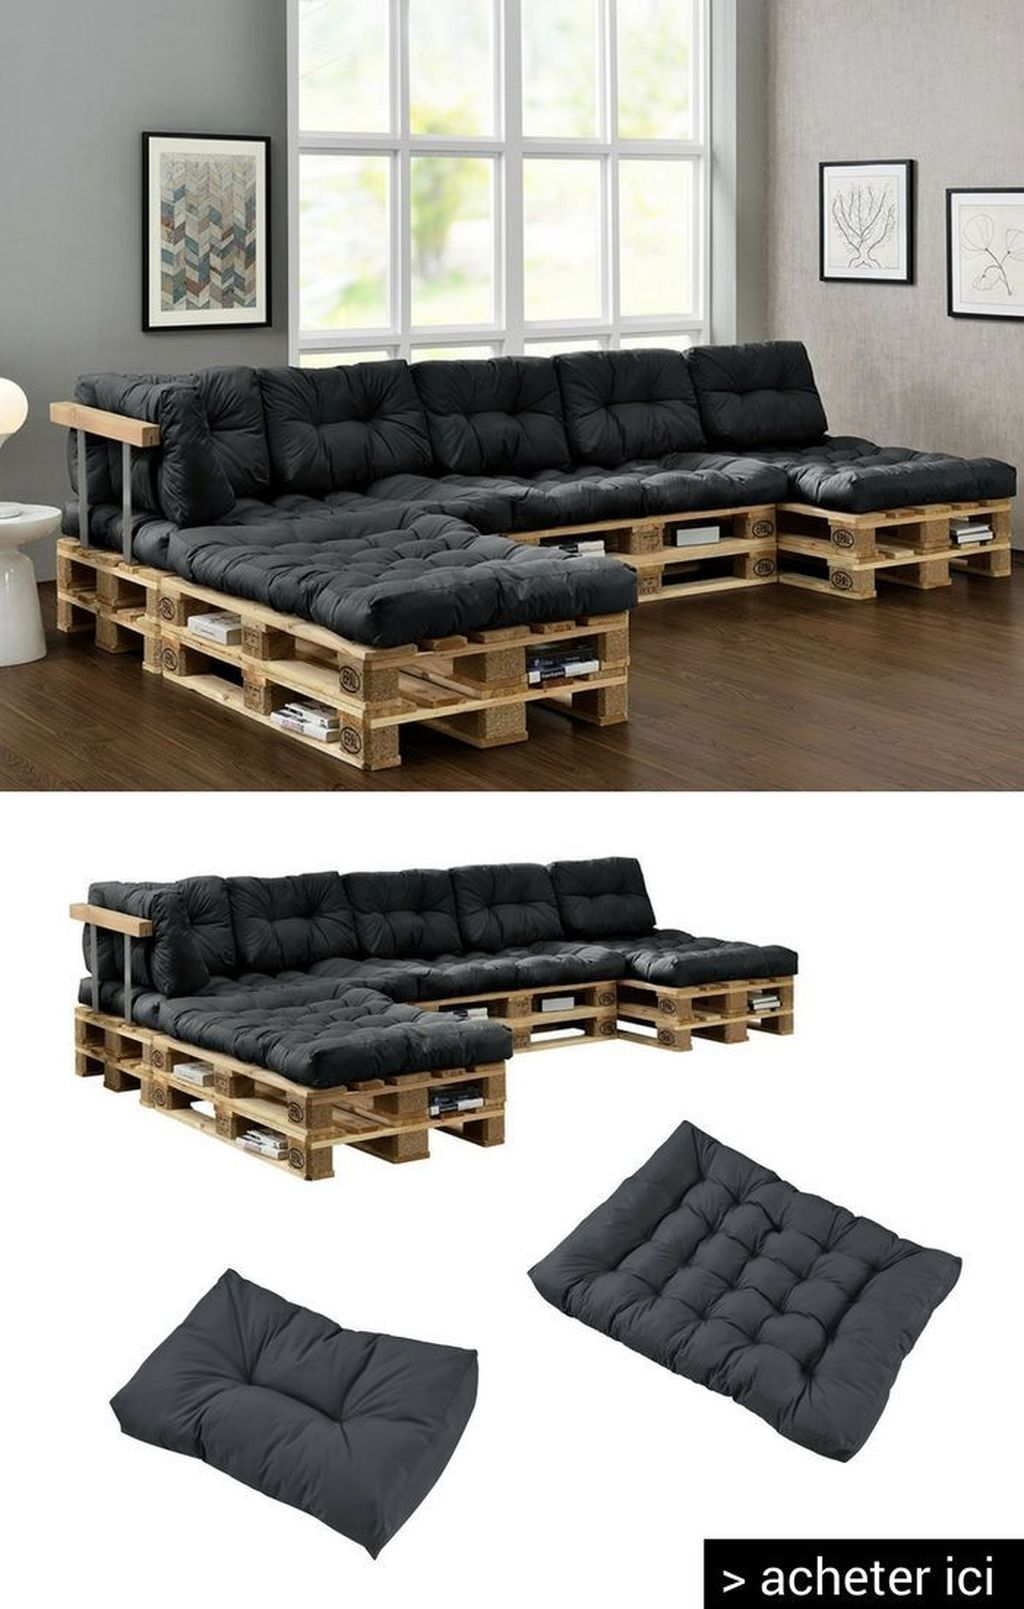 40 Spectacular Diy Projects Pallet Sofa Design Ideas For You Diy Pallet Couch Diy Furniture Couch Couch Furniture